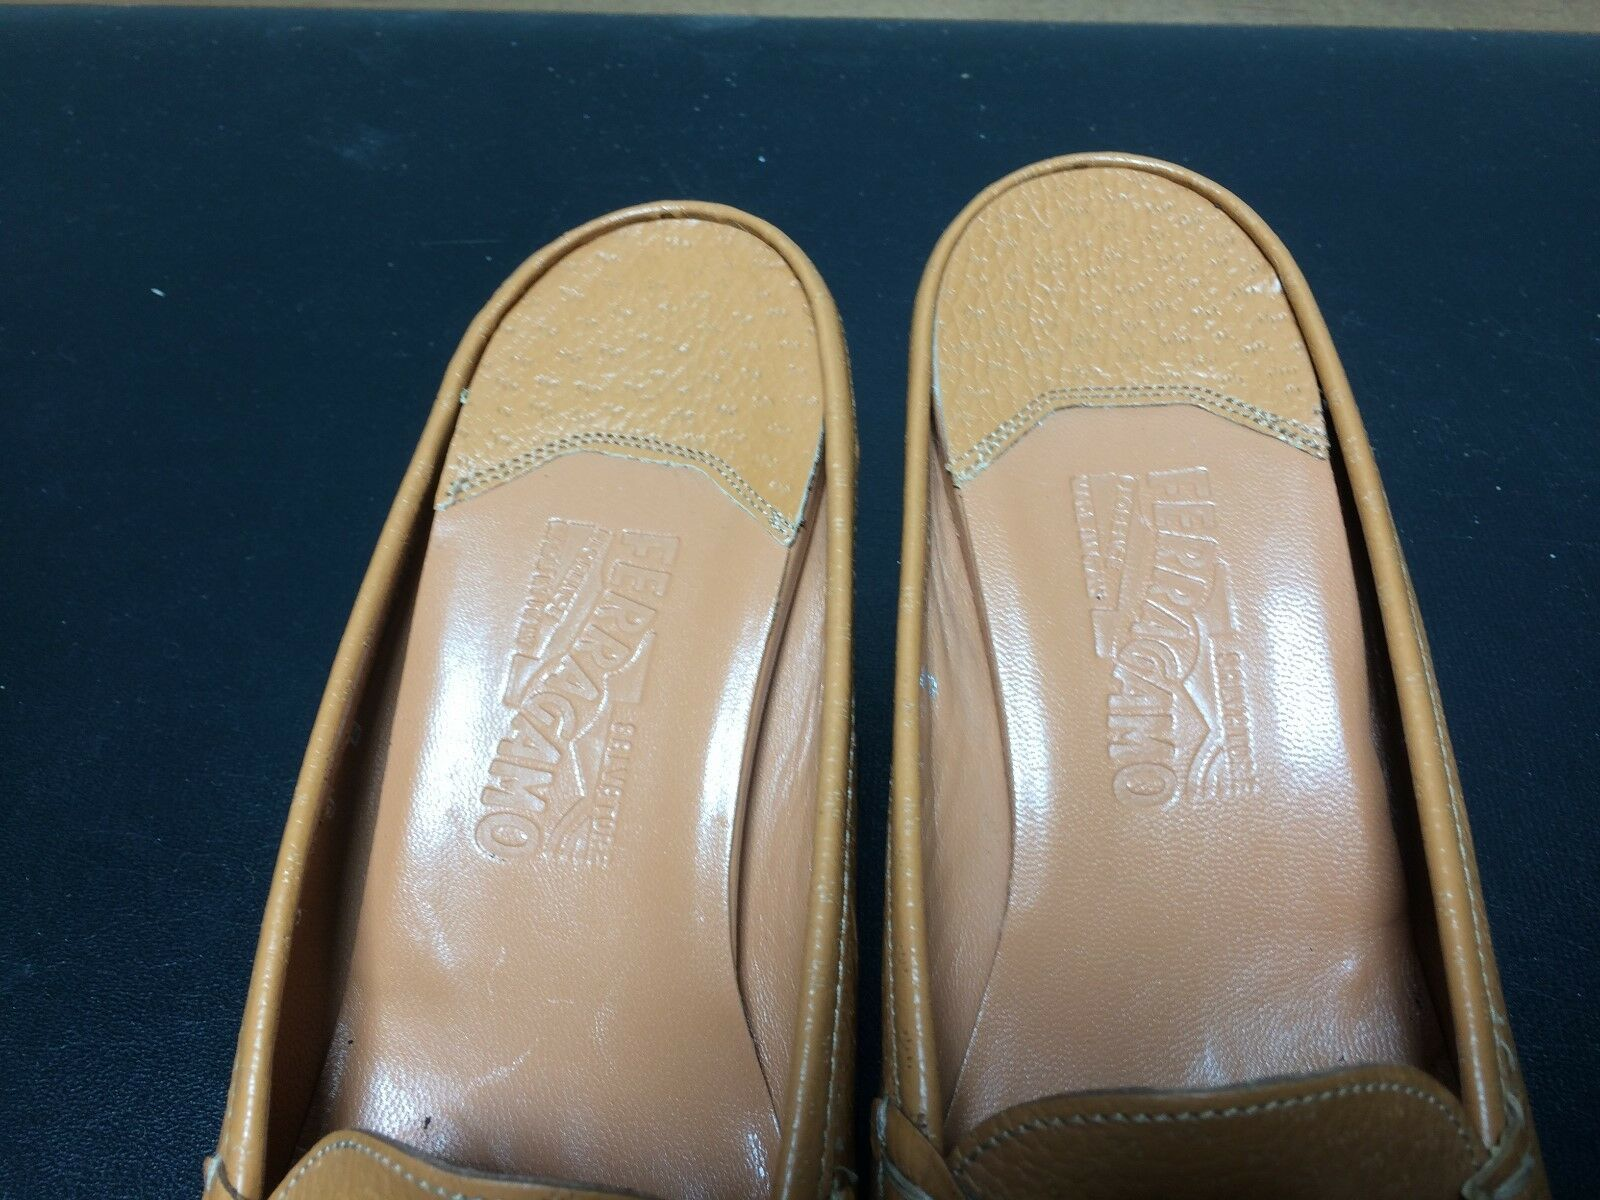 Ferragamo Sz 9 B Brown Pebbled Leather Mules Kitten Heels Heels Heels eb6b57